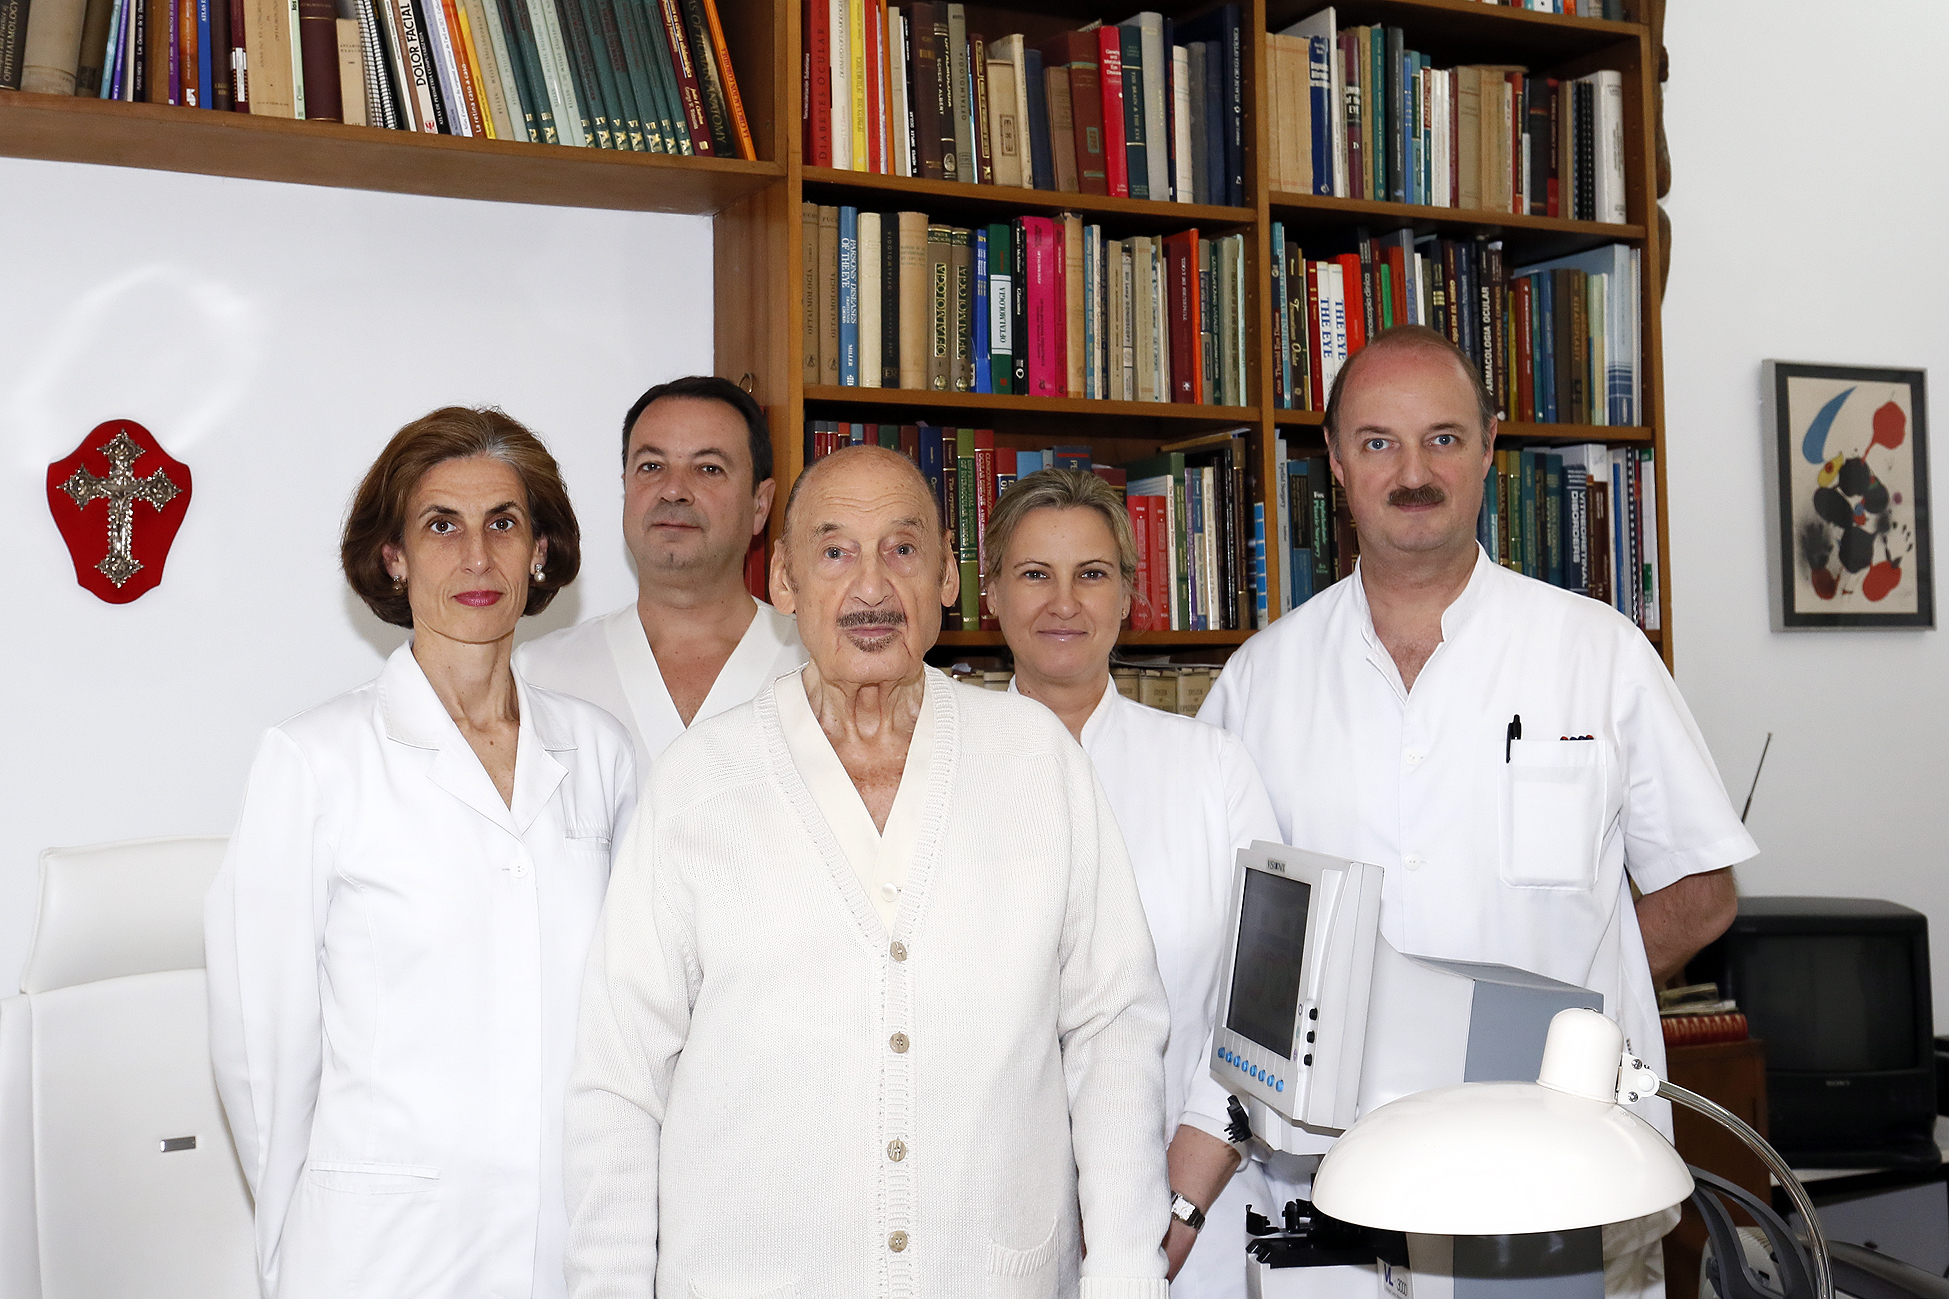 José María Simón explains the successful cataract surgery that restored the vision and power to John II of Aragon